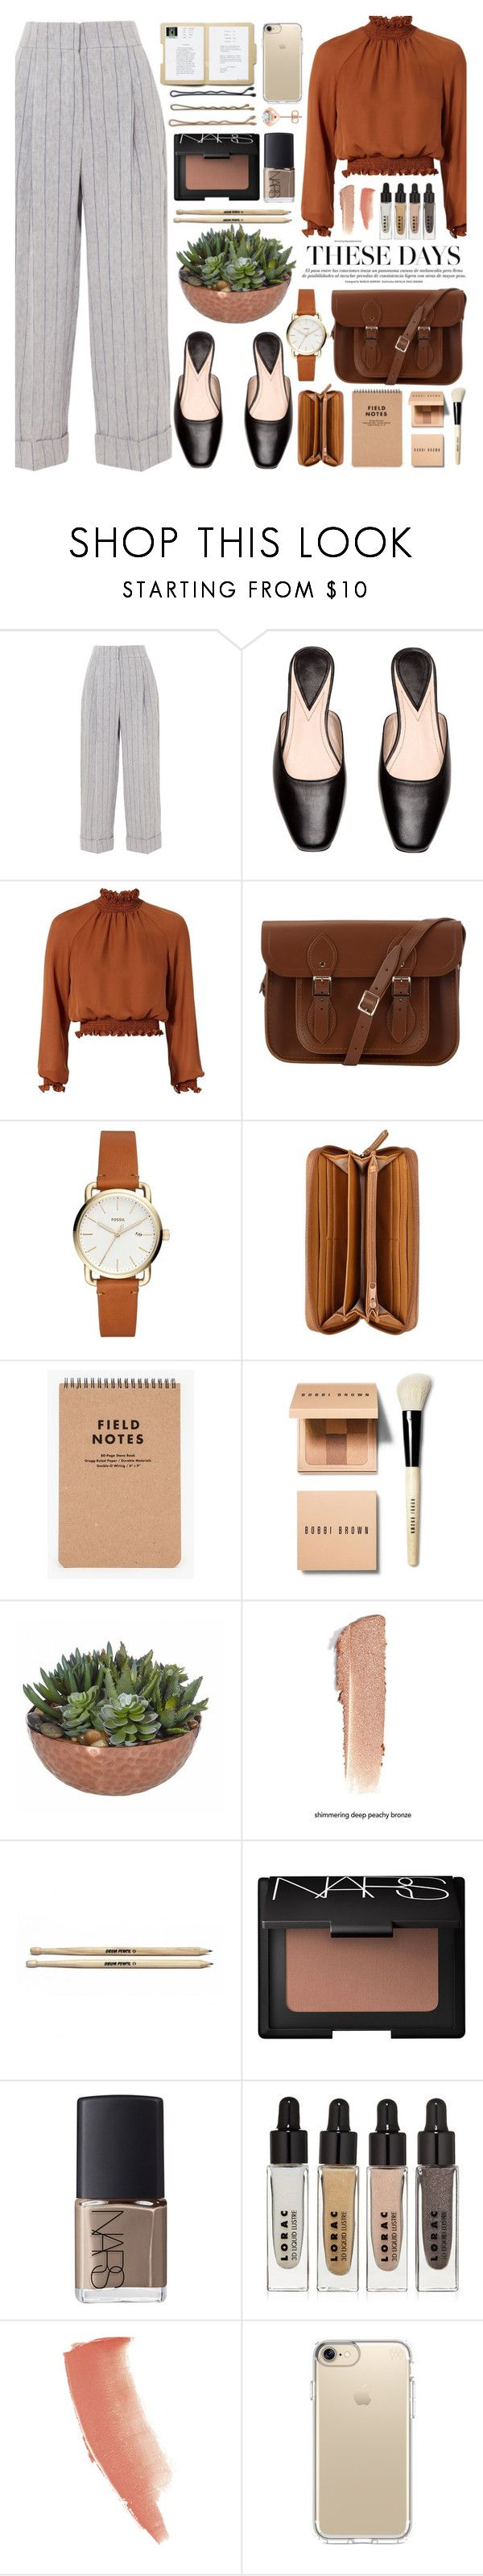 """St. Beauty - Not Discuss It"" by annaclaraalvez ❤ liked on Polyvore featuring Brunello Cucinelli, Cinq à Sept, The Cambridge Satchel Company, Nine West, Bobbi Brown Cosmetics, NARS Cosmetics, LORAC, Charlotte Tilbury, Guide London and Speck"